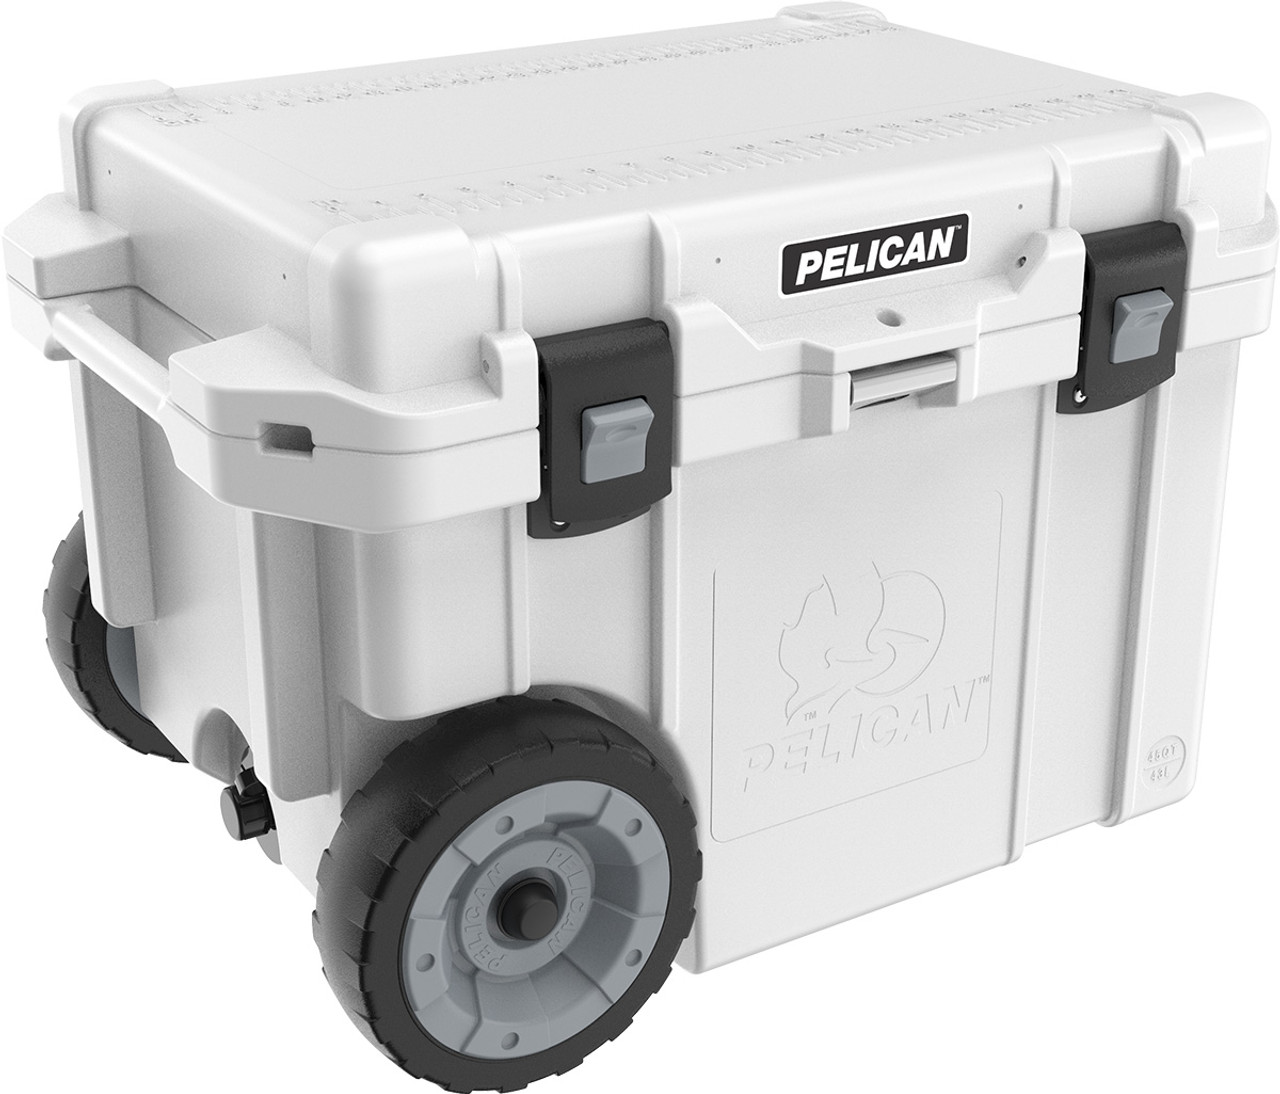 Pelican 45QW Quart Elite Wheeled Cooler with Heavy Duty Wheels, Molded-In Handles with Built In Trolley Handle, Built-in Bottle Opener and Press and Pull Latches, Available in Tan or White, 30x21x20, 38 lbs